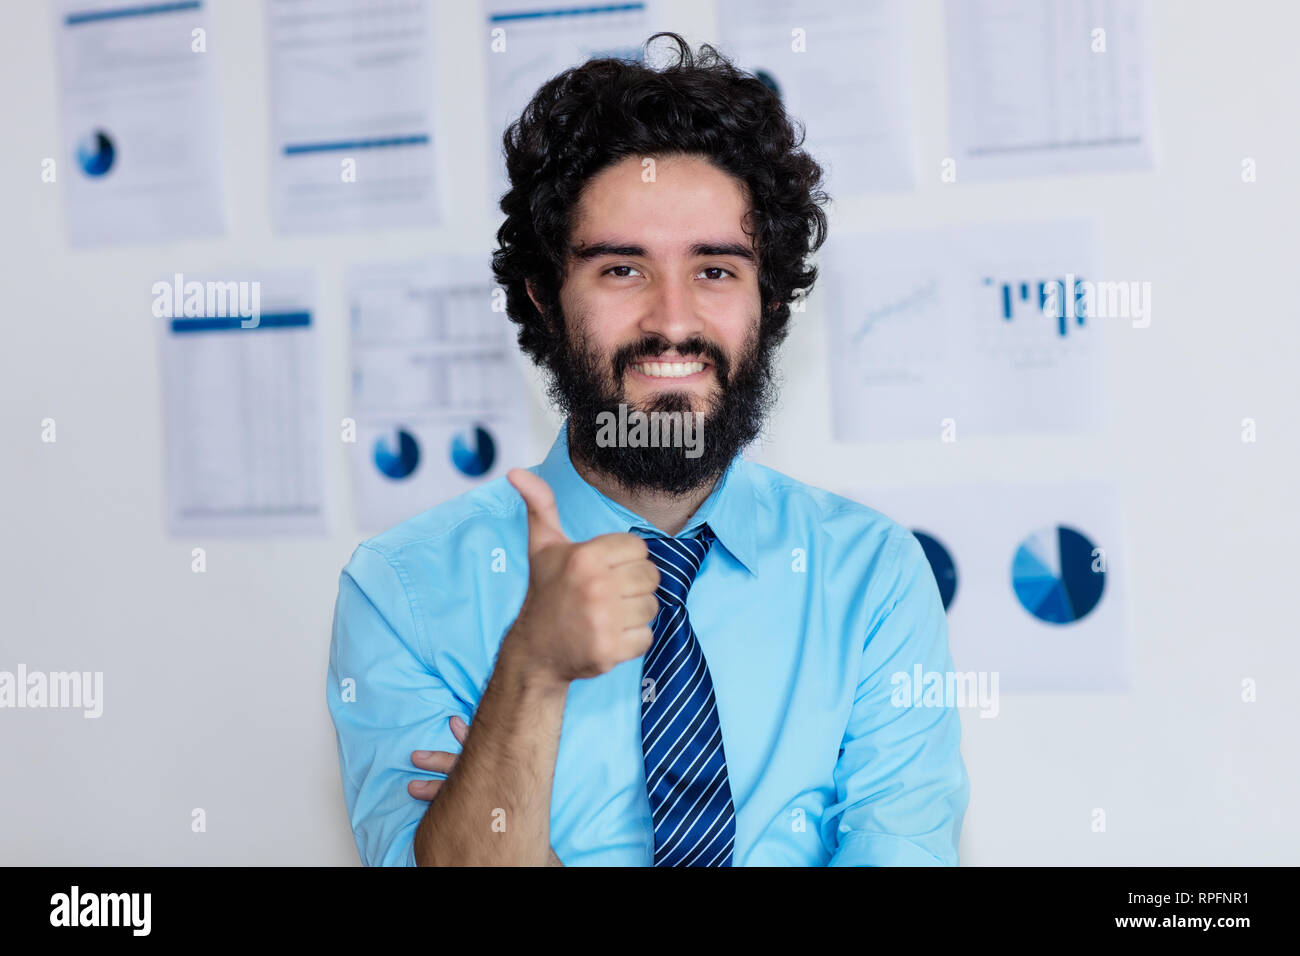 569b12a9796 Successful arabic businessman with beard and tie at office of company -  Stock Image